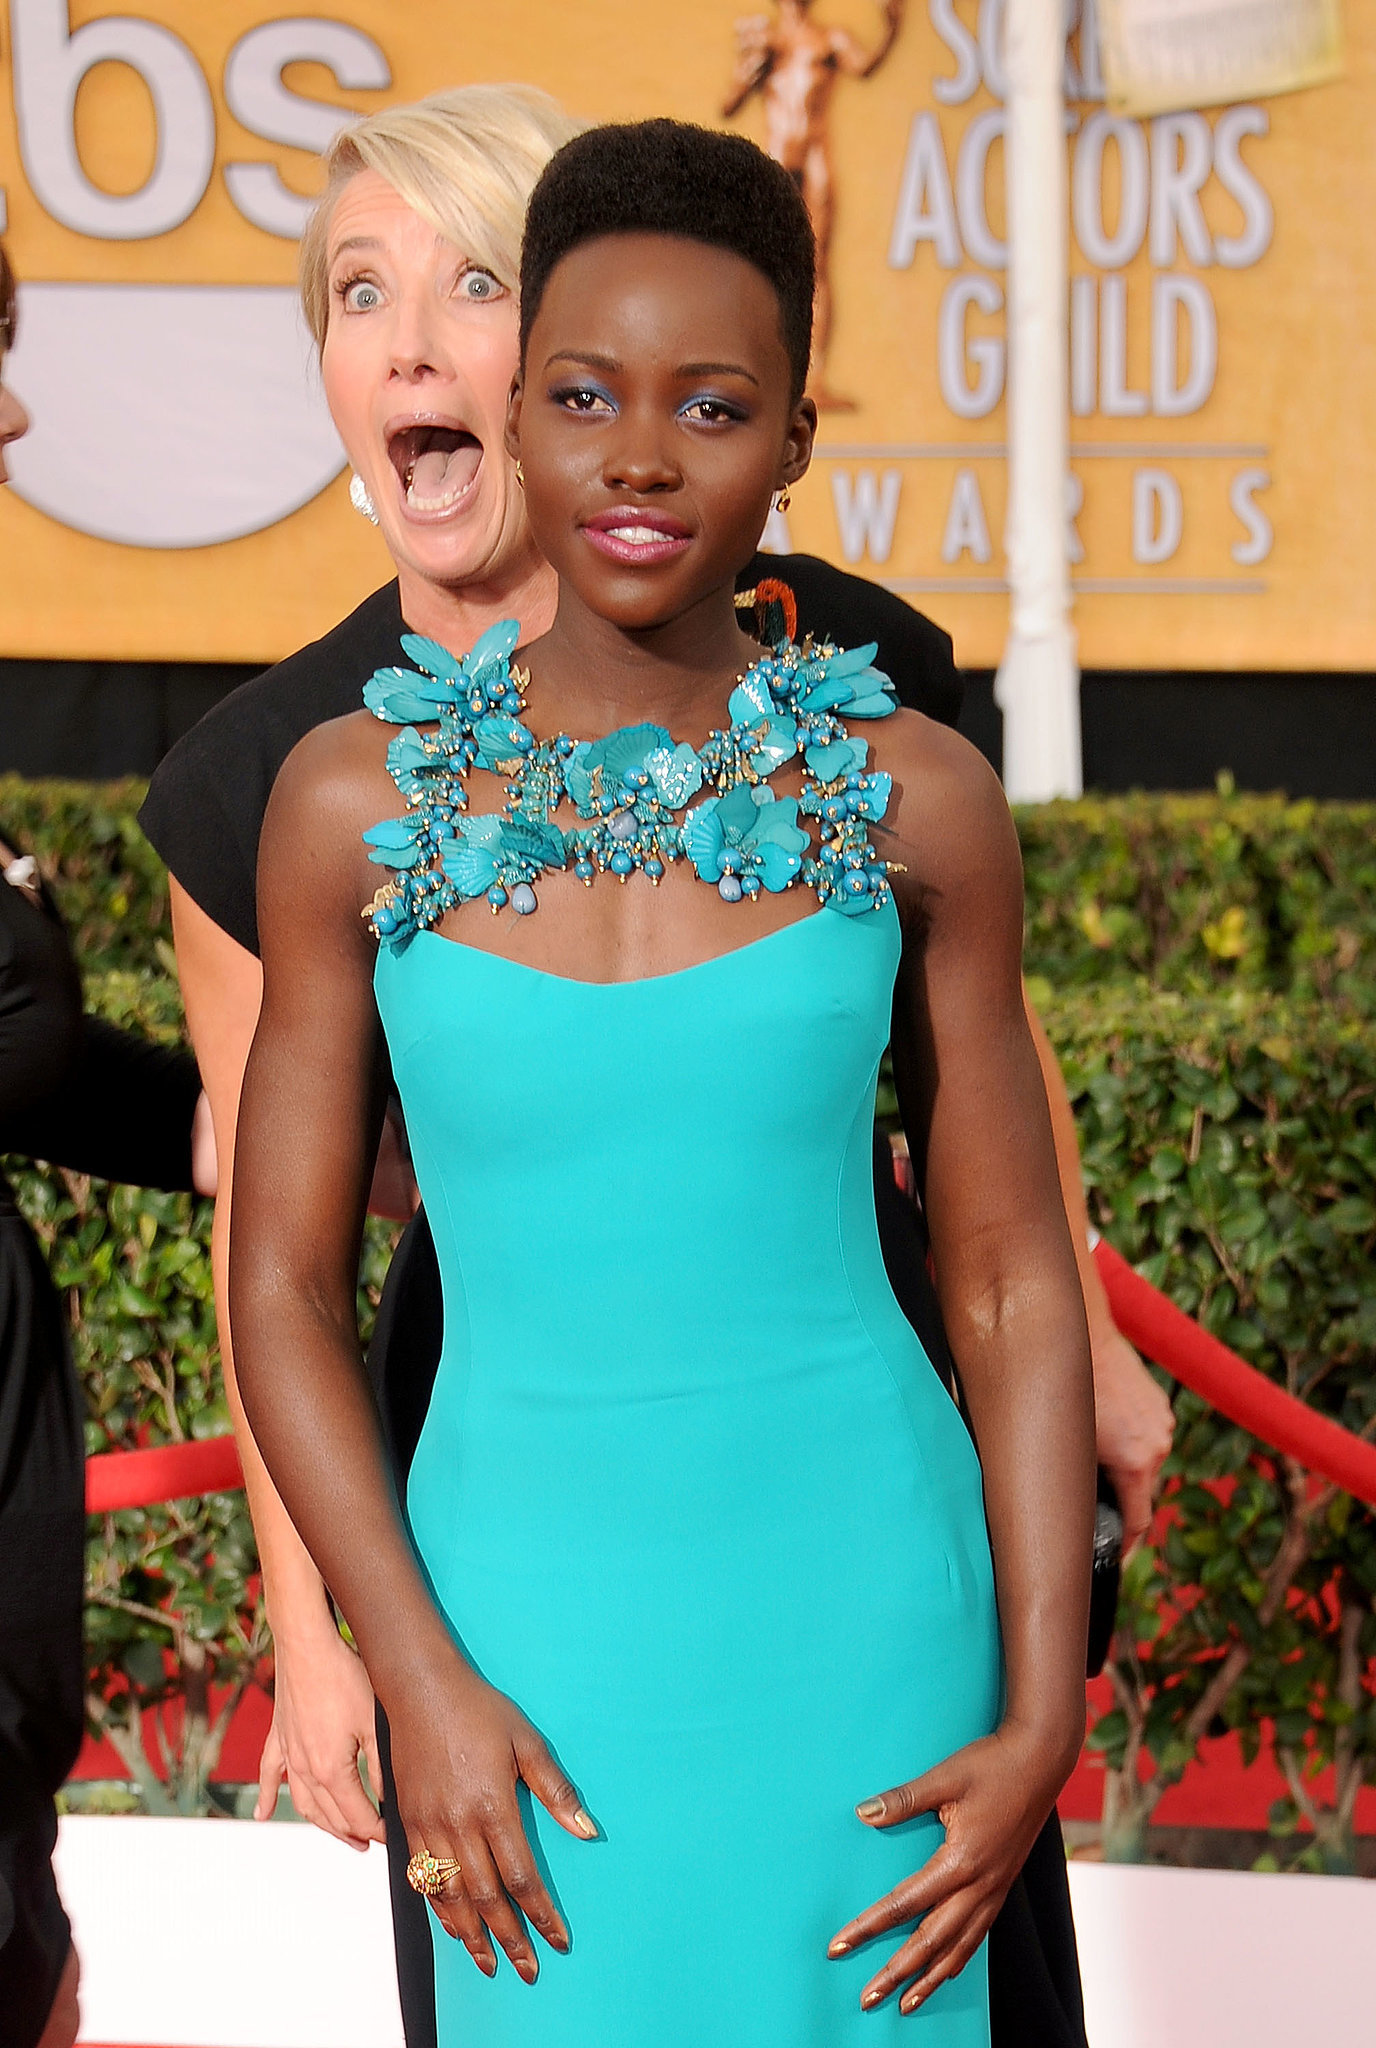 Emma Thompson photobombed Lupita Nyong'o at the SAG Awards, and it was awesome.